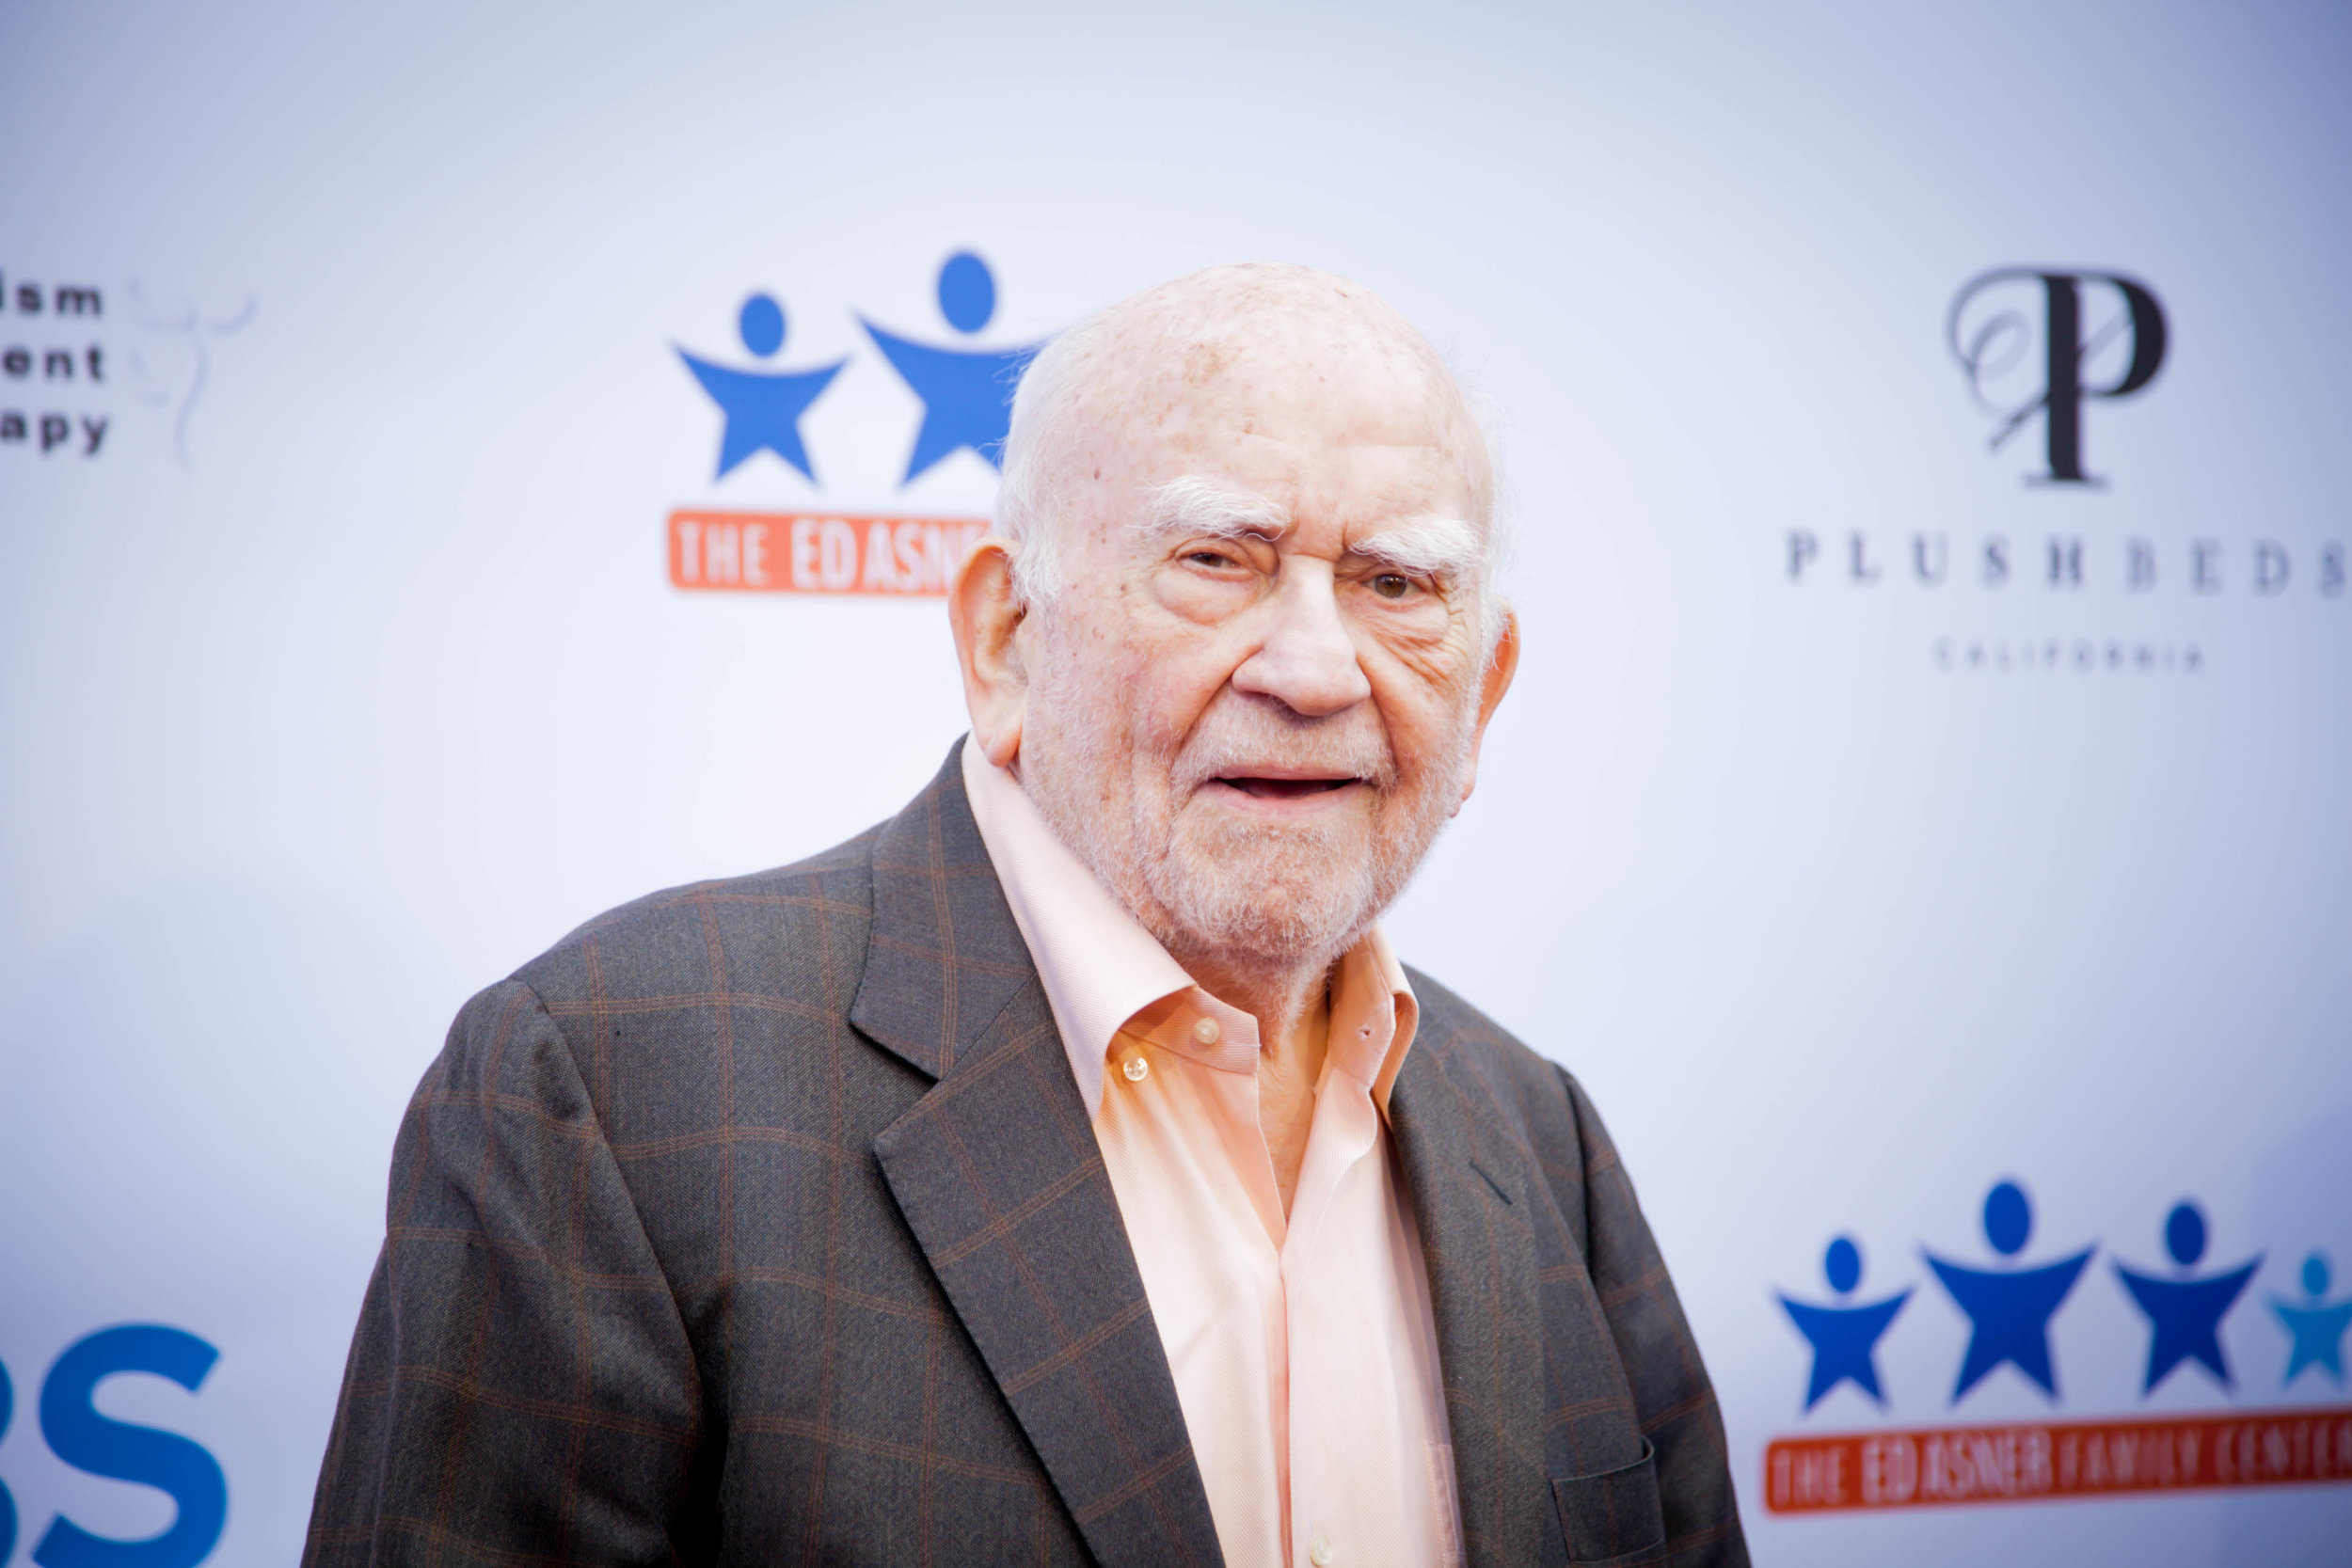 Ed Asner | Photo: Erin Poole for Average Socialite